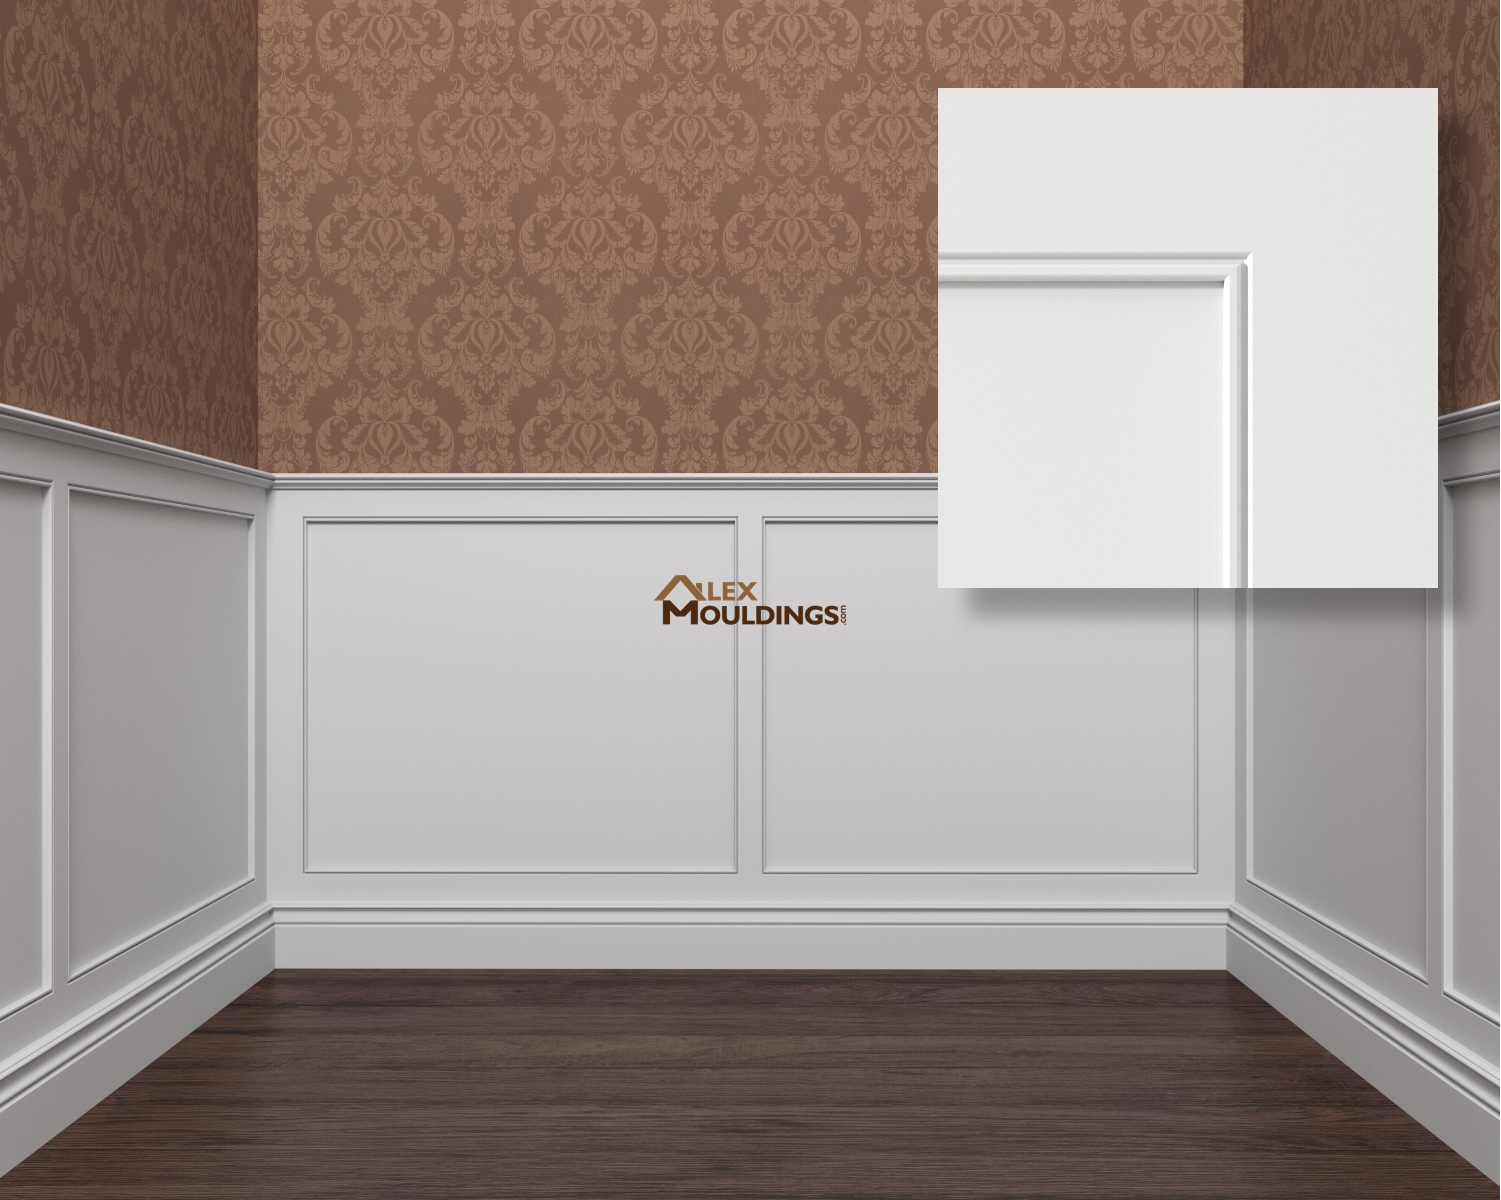 Wall panels wainscoting raised recessed flat beadboard shaker bead frame wainscoting jeuxipadfo Images